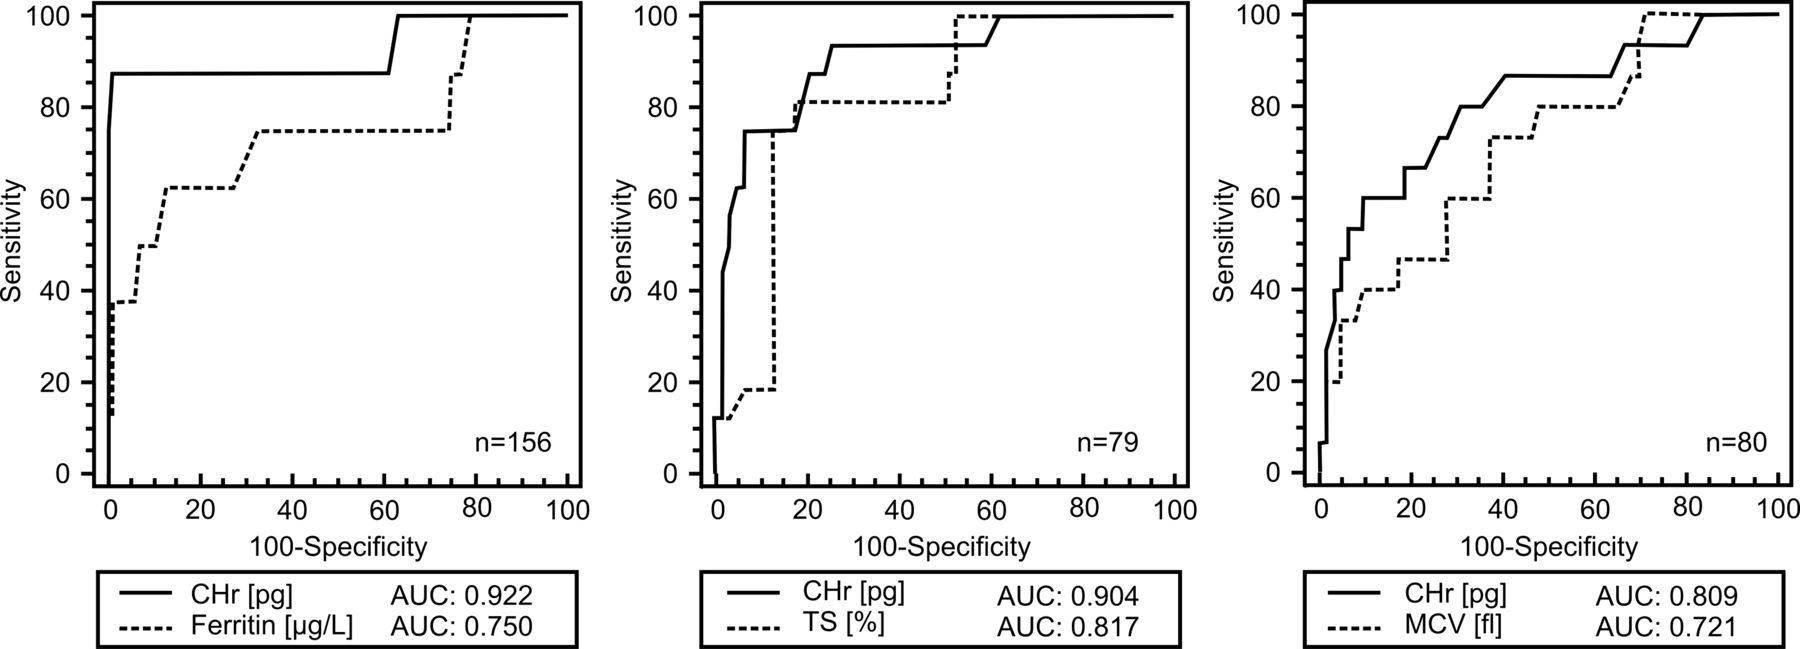 Reticulocyte haemoglobin content as a marker of iron